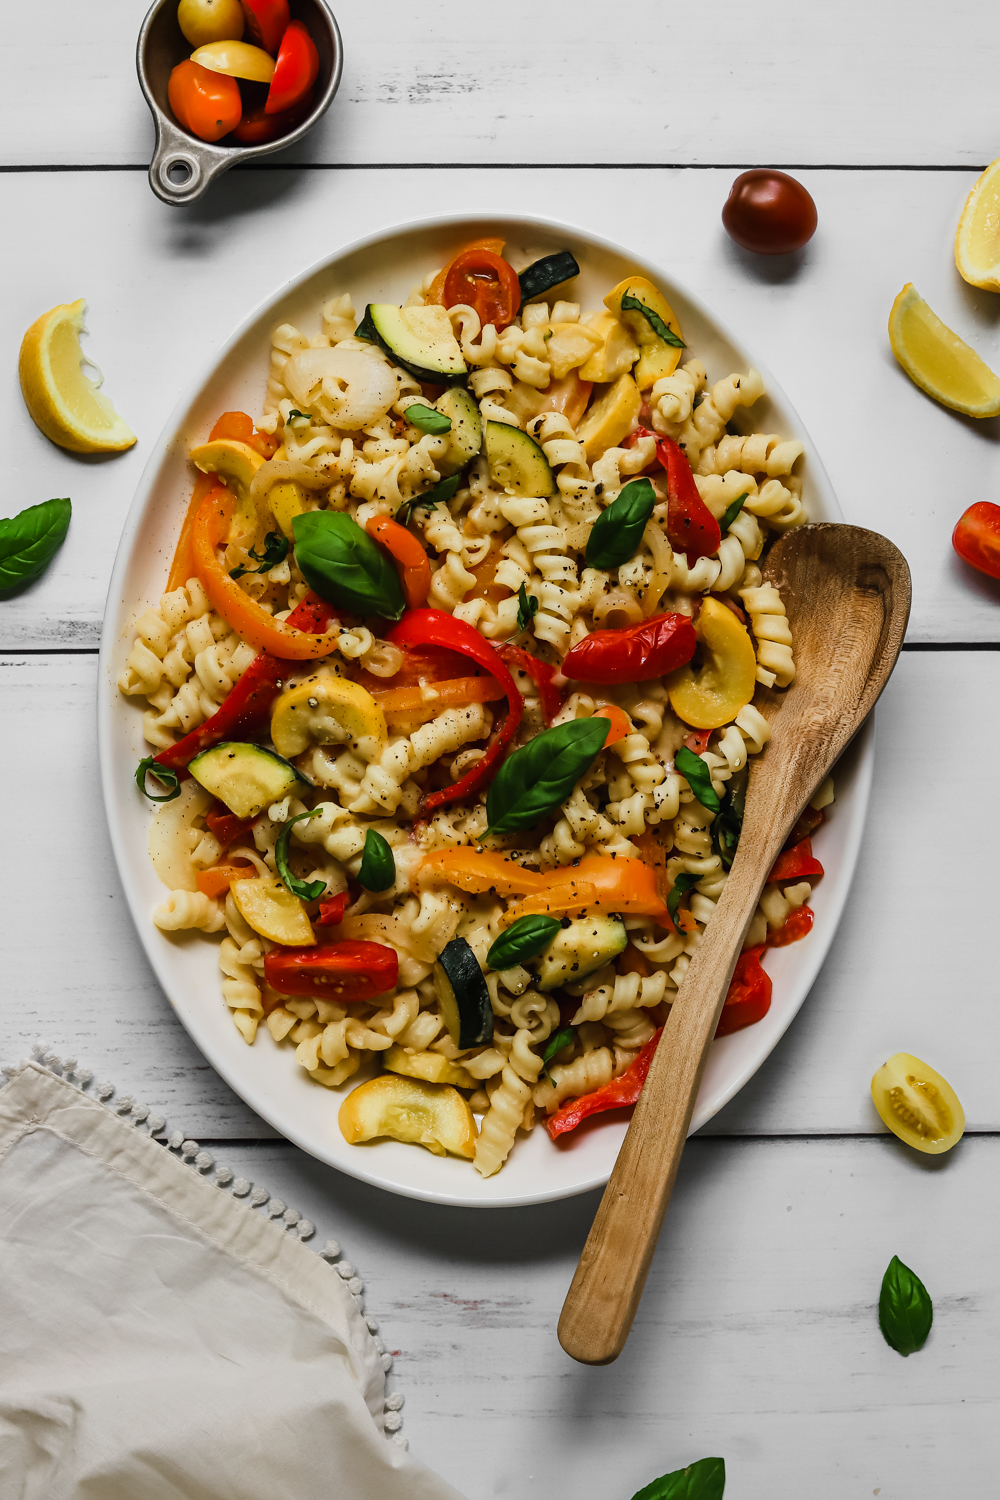 Large white platter of creamy vegan pasta with zucchini, tomato, onion, yellow squash, and red bell peppers.